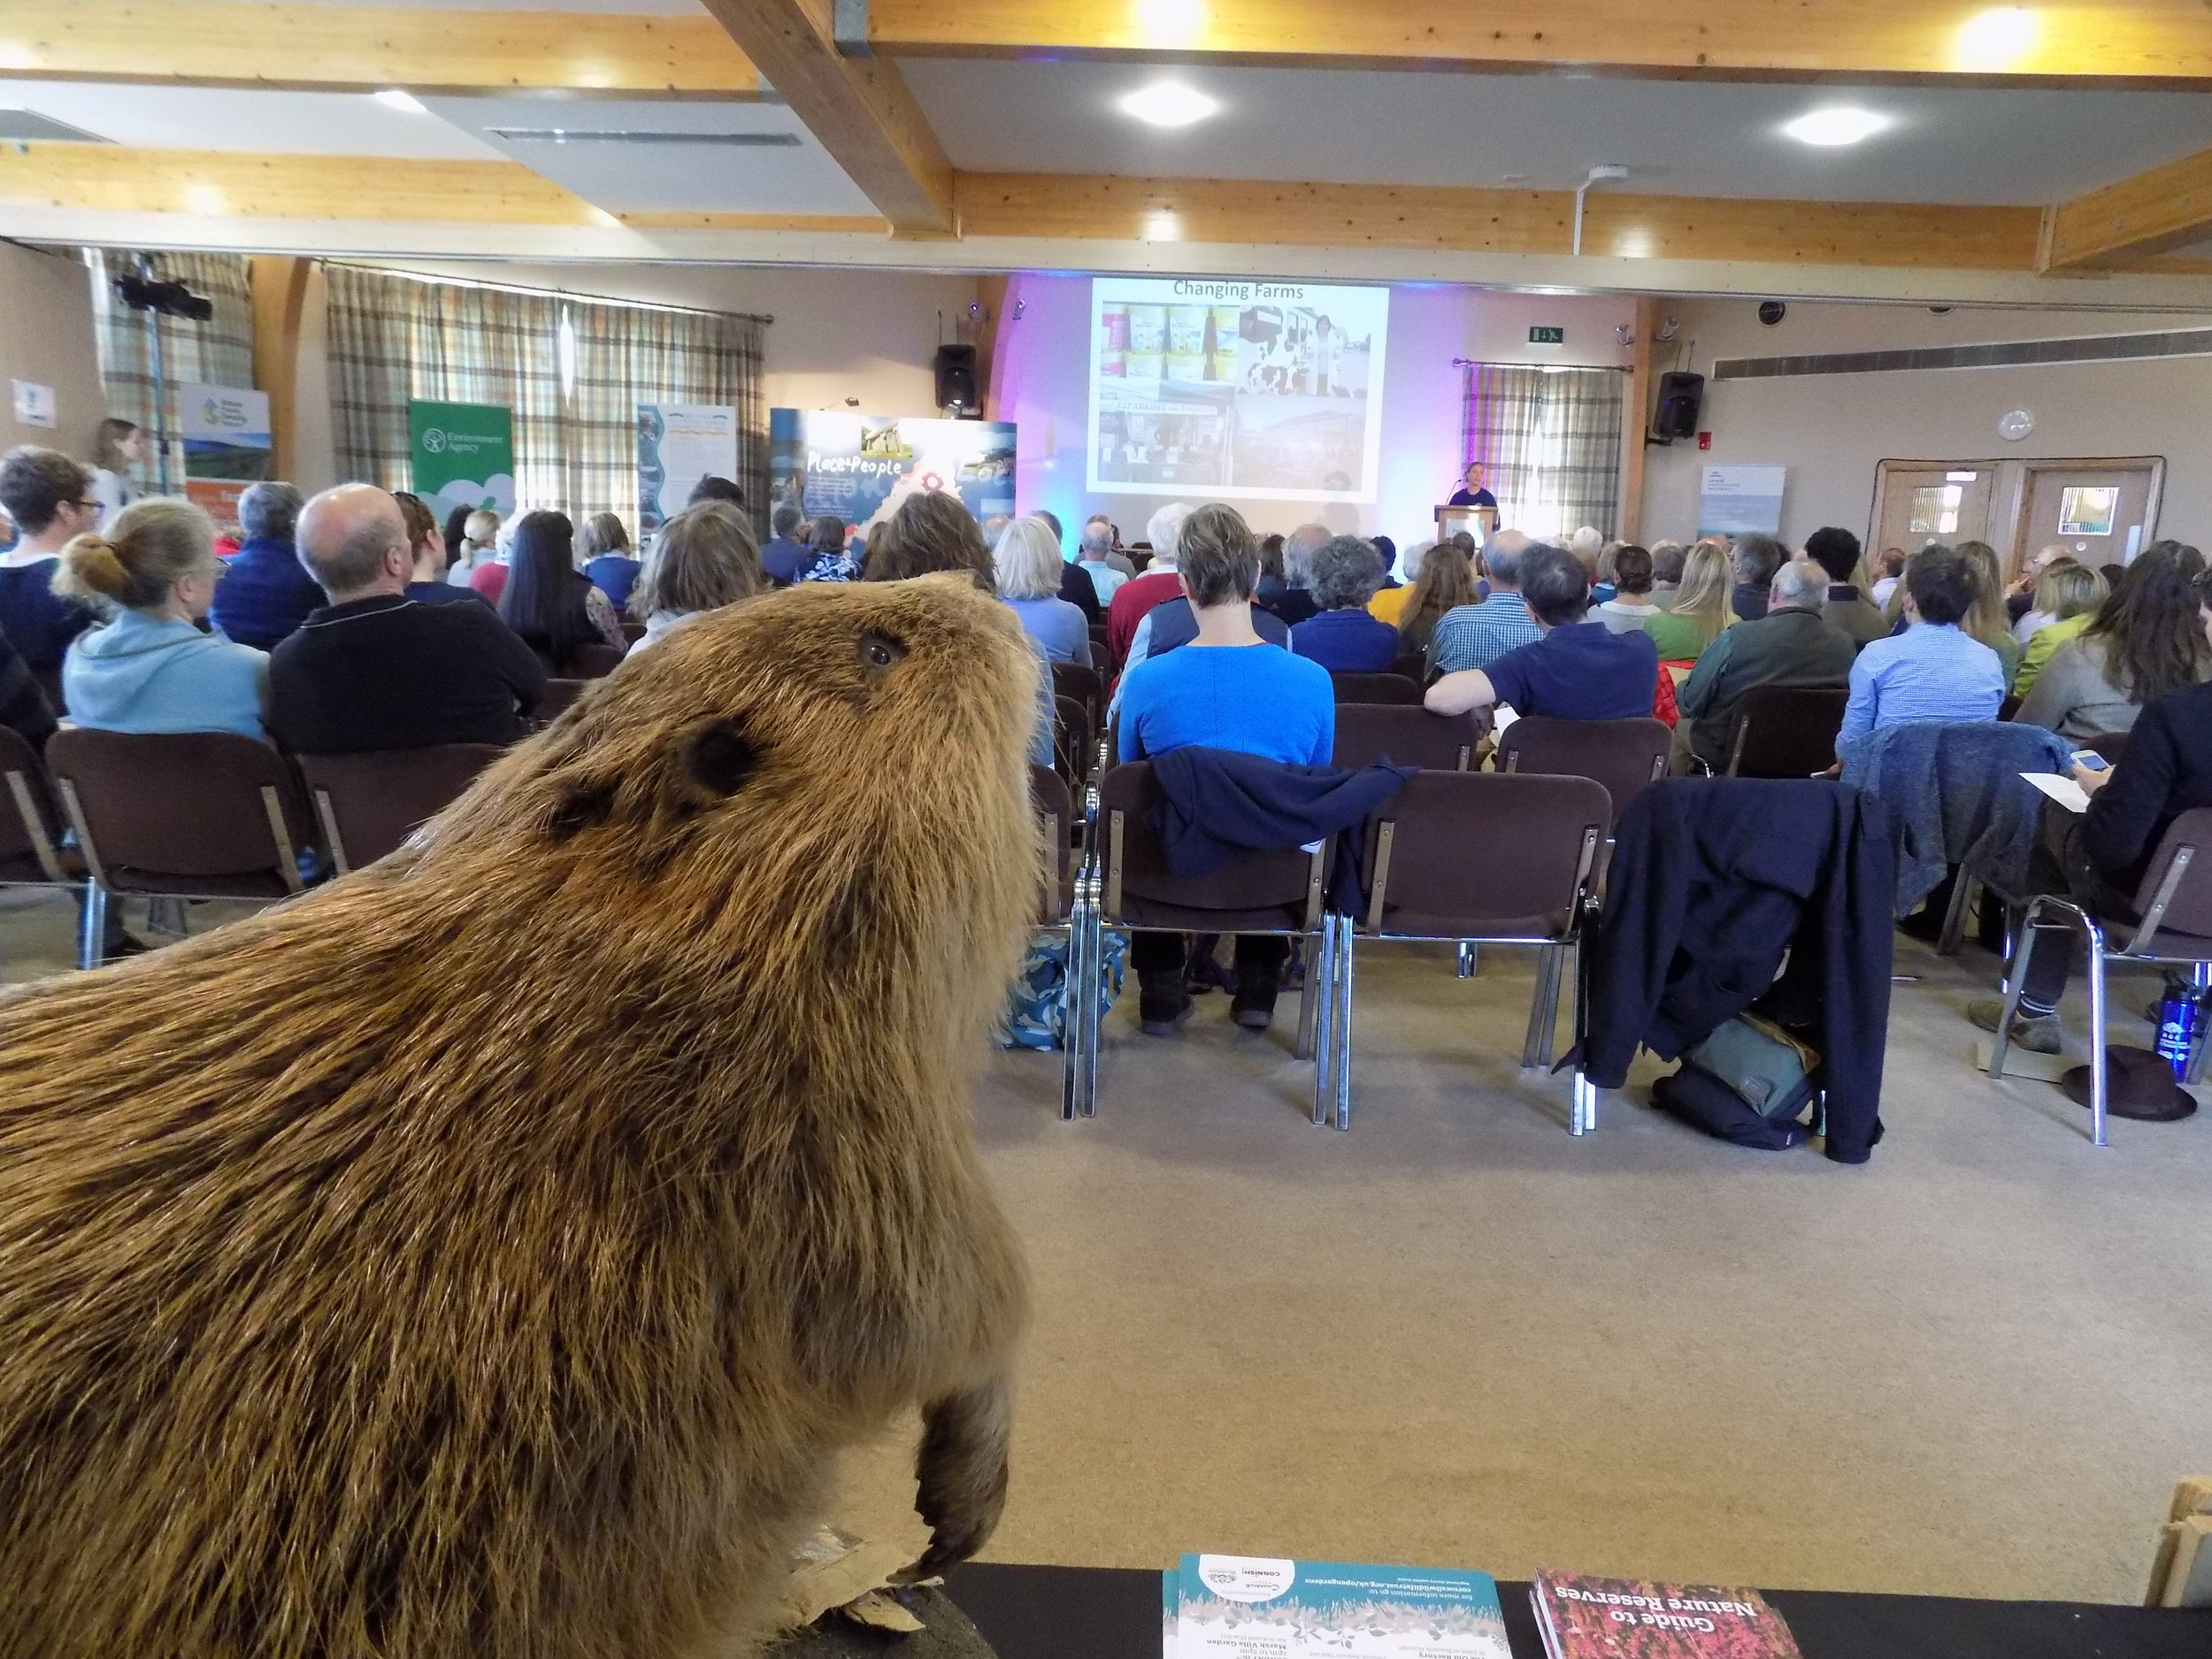 The Beaver watching the conference proceedings